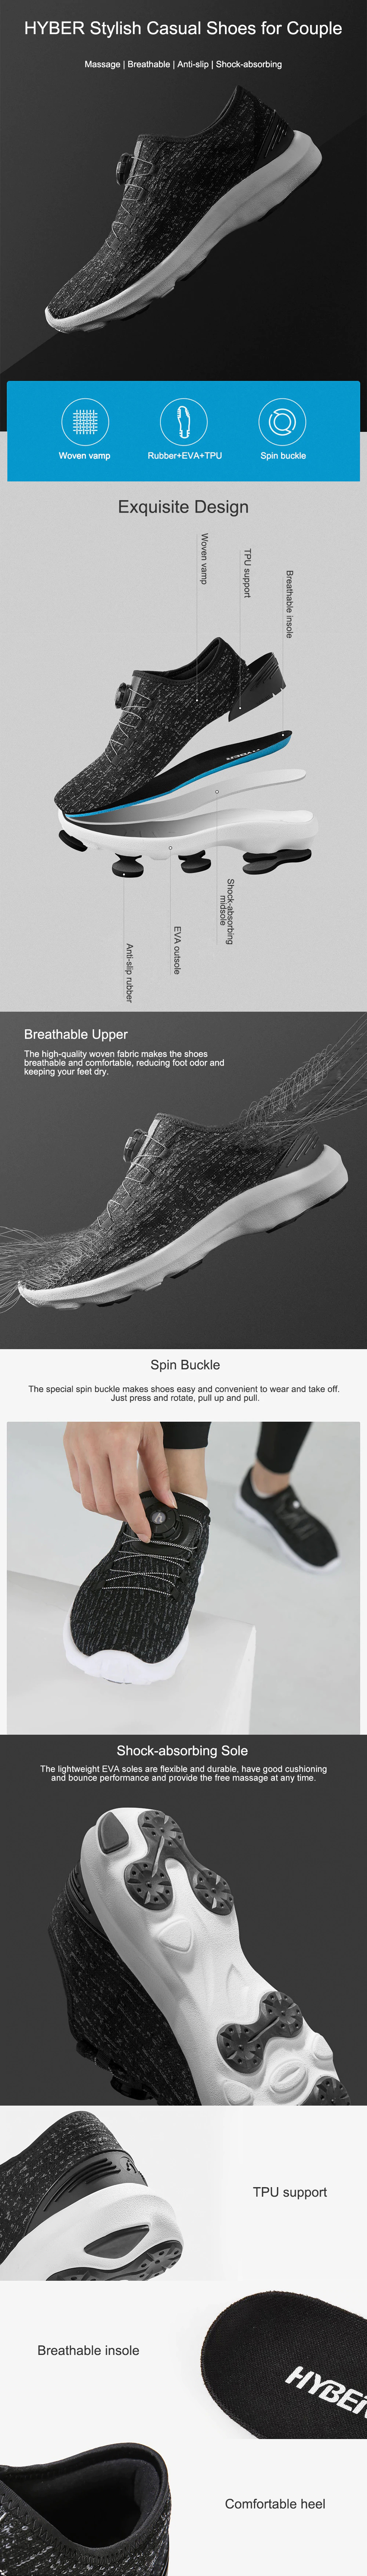 XIAOMI HYBER Outdoor Men Slip-on Fabric Anti-skid Casual Lightweight Breathe Running Shoes Sneakers